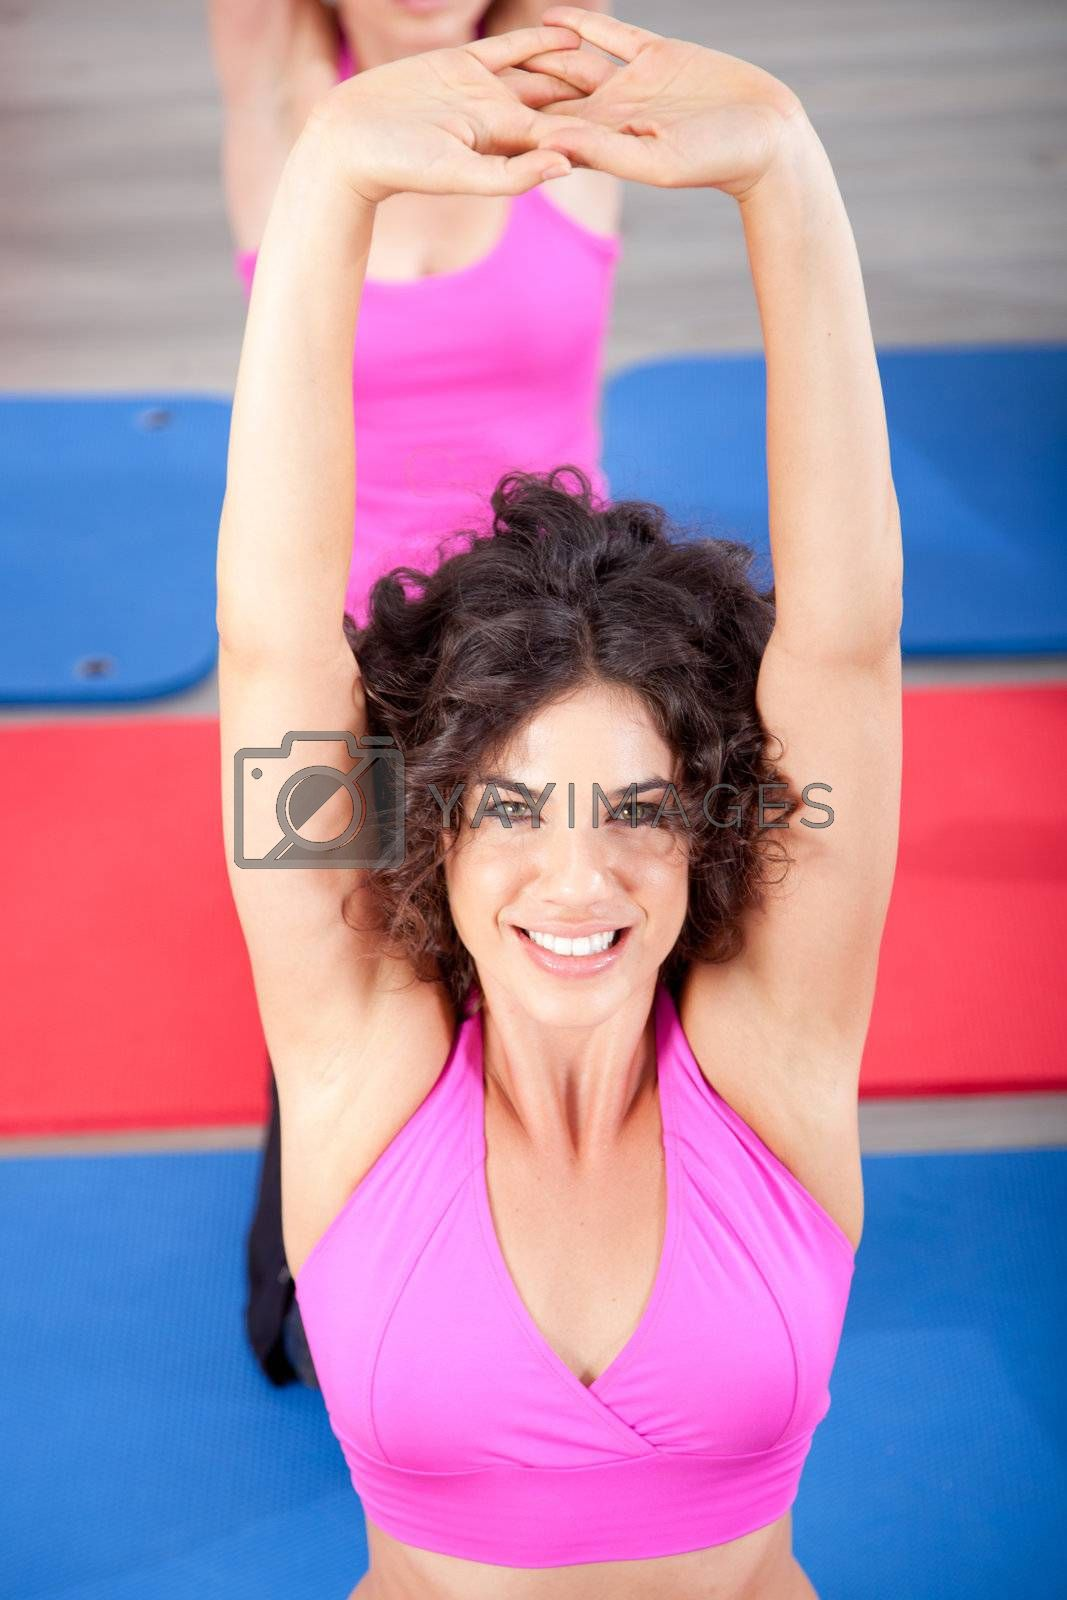 Attractive young woman working out. Aerobics class..